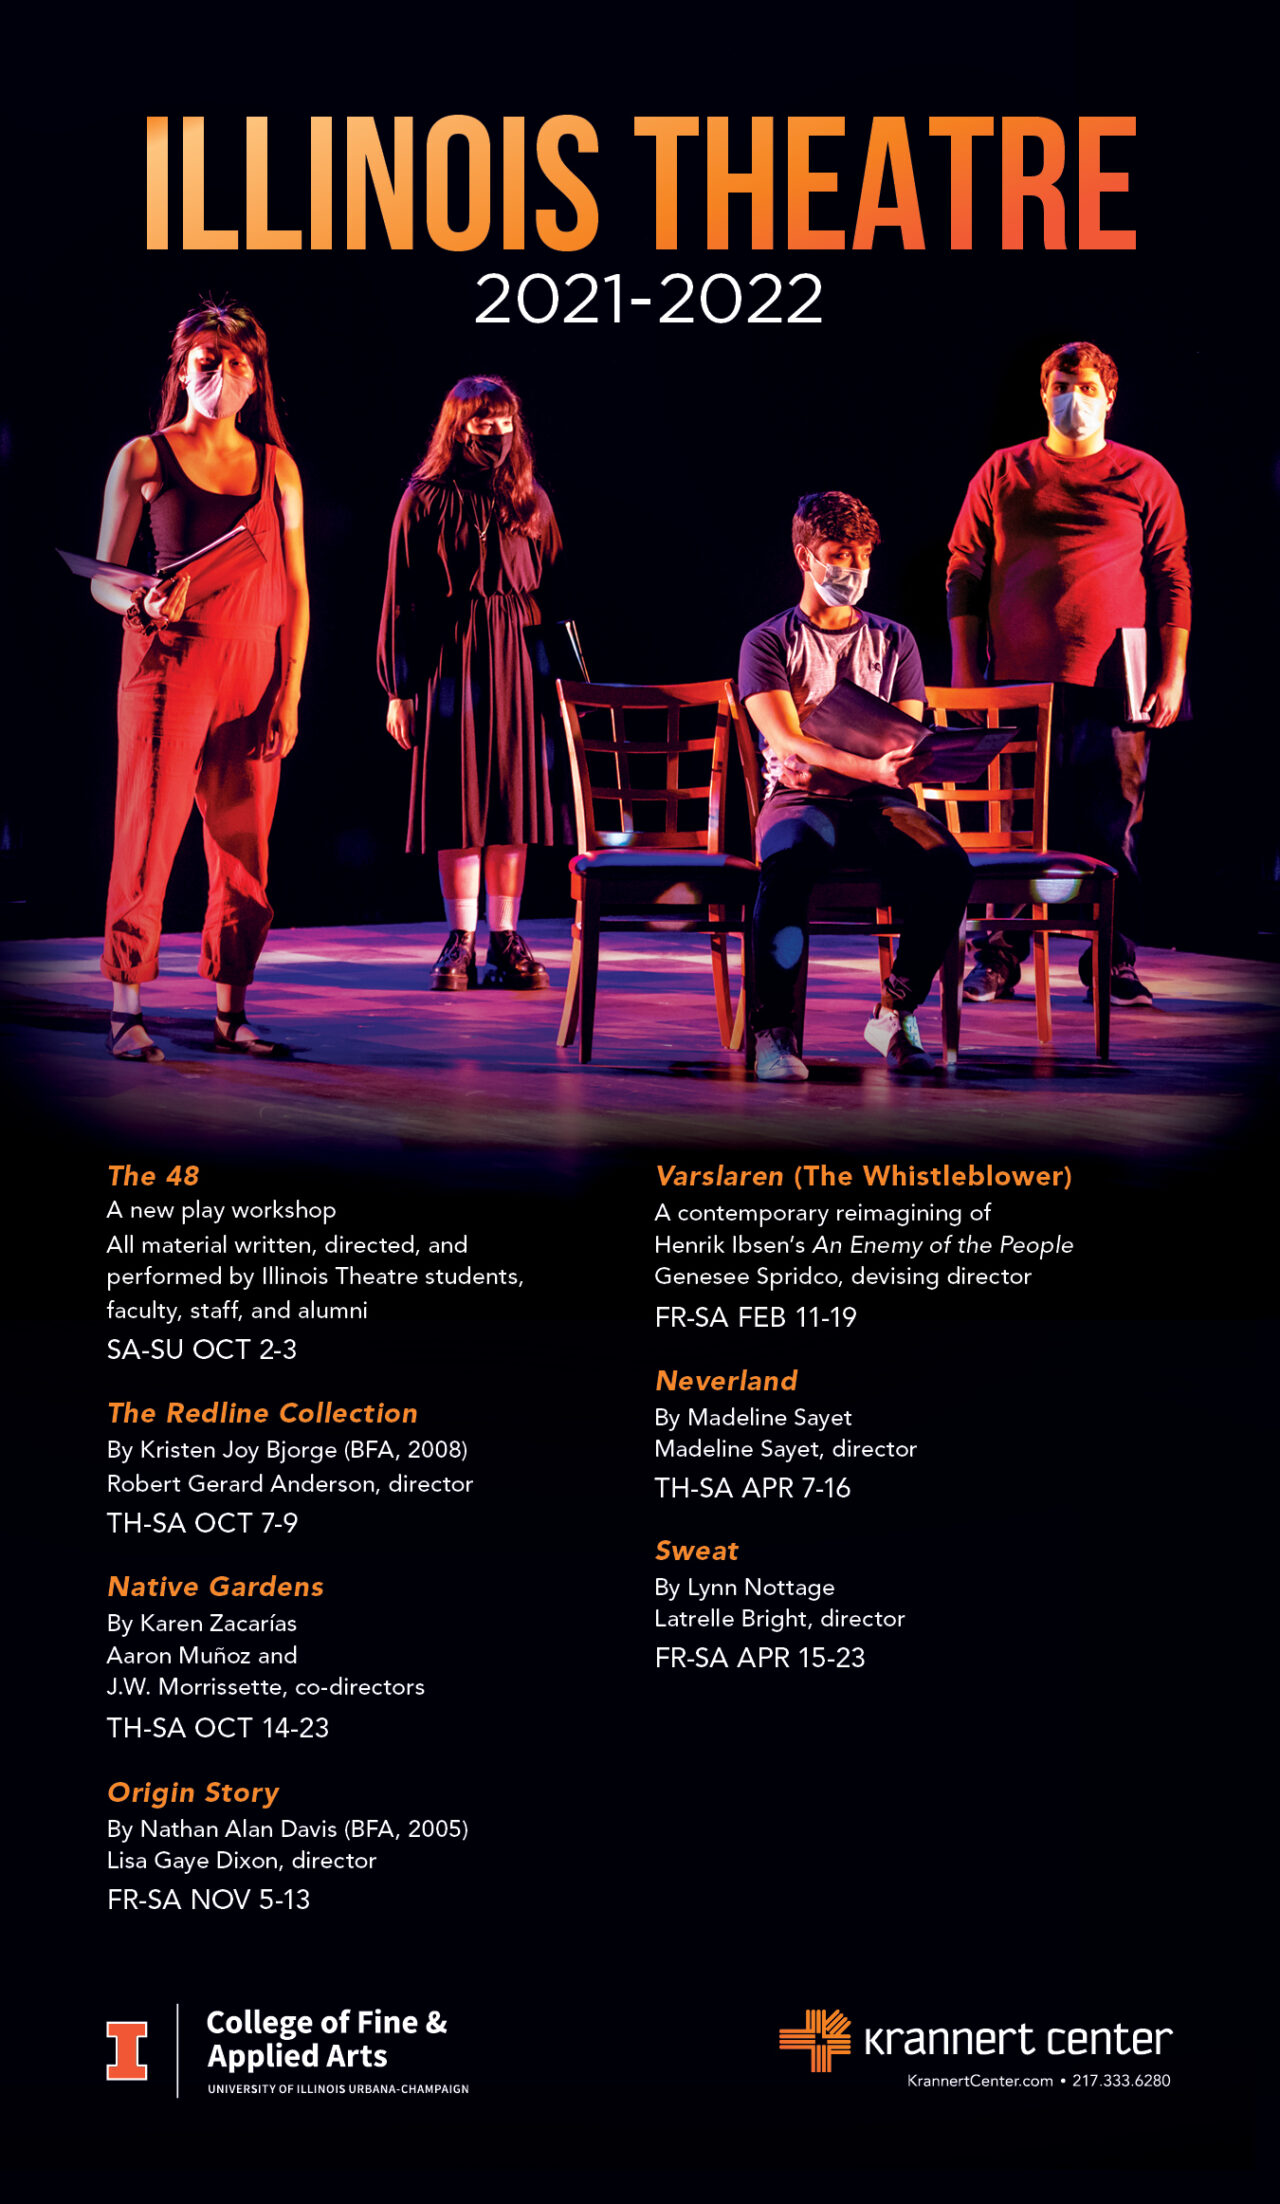 Illinois Theatre's Season Poster listing 7 events for the 2021-2022 school year